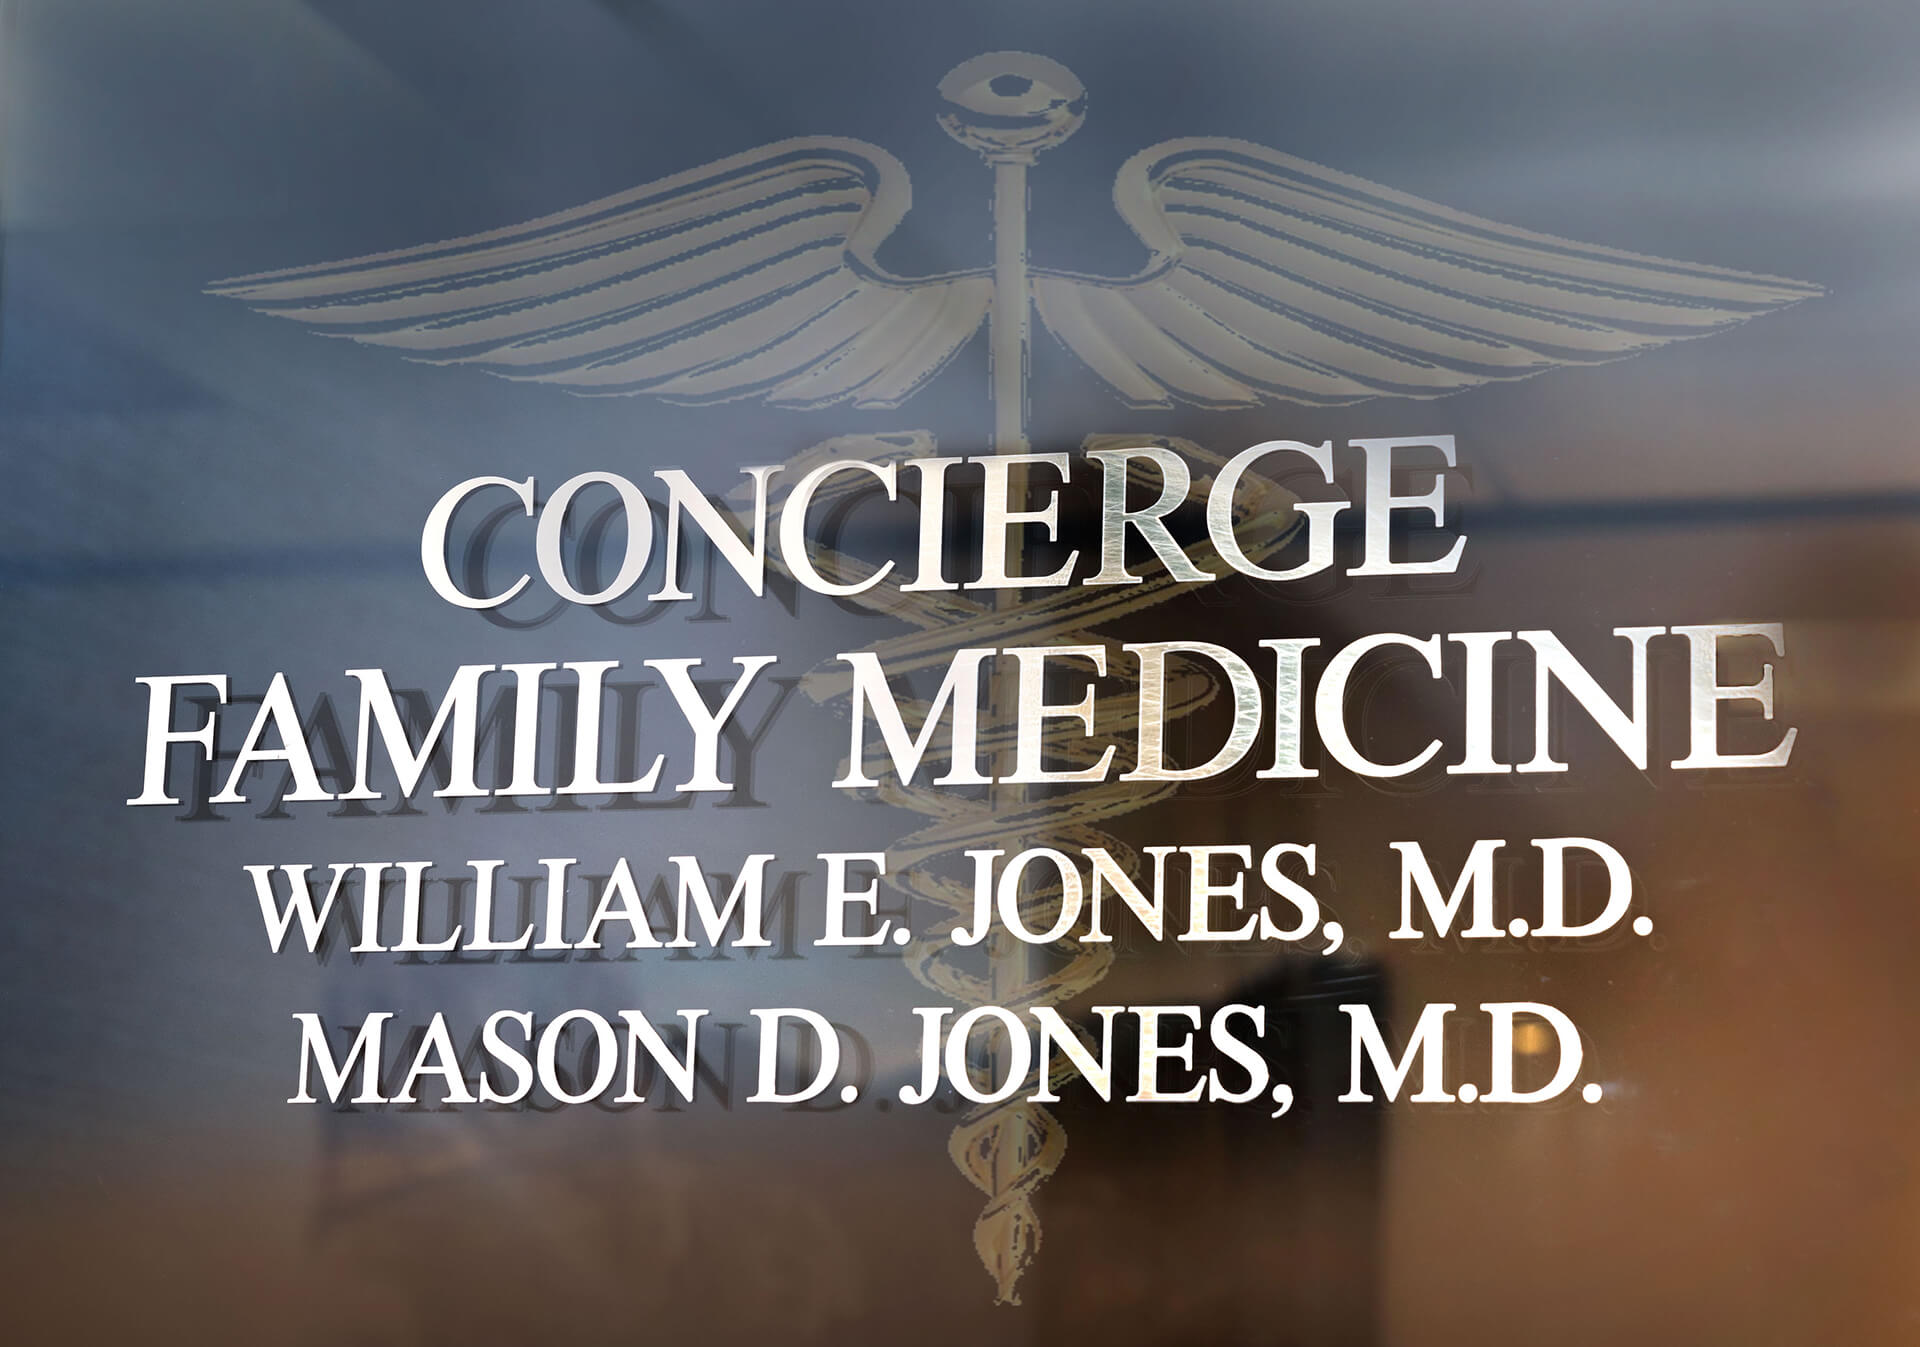 The Office of Concierge Family Medicine